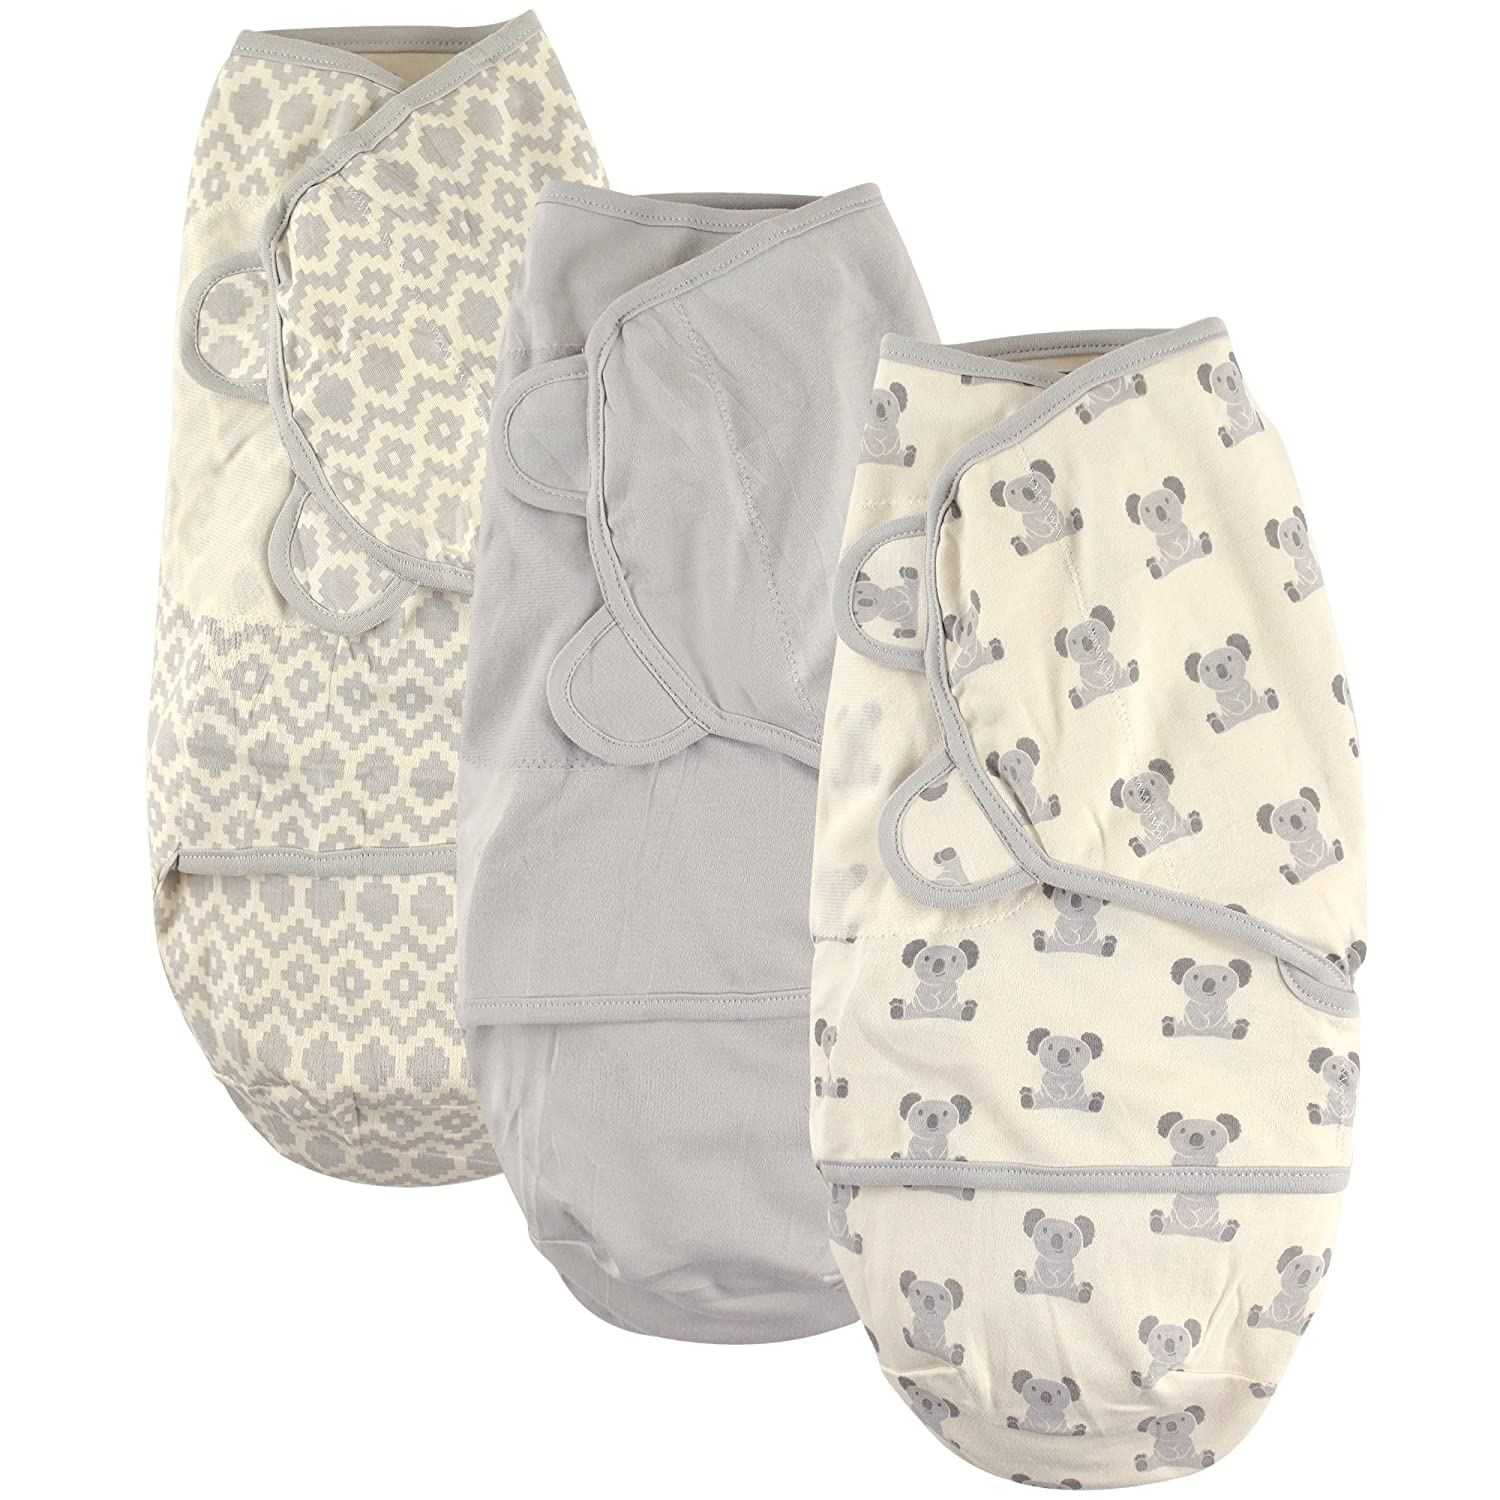 Hudson Baby Swaddle Wrap 0-3 Months 51034/_Whales/_0-3M Blue Whales